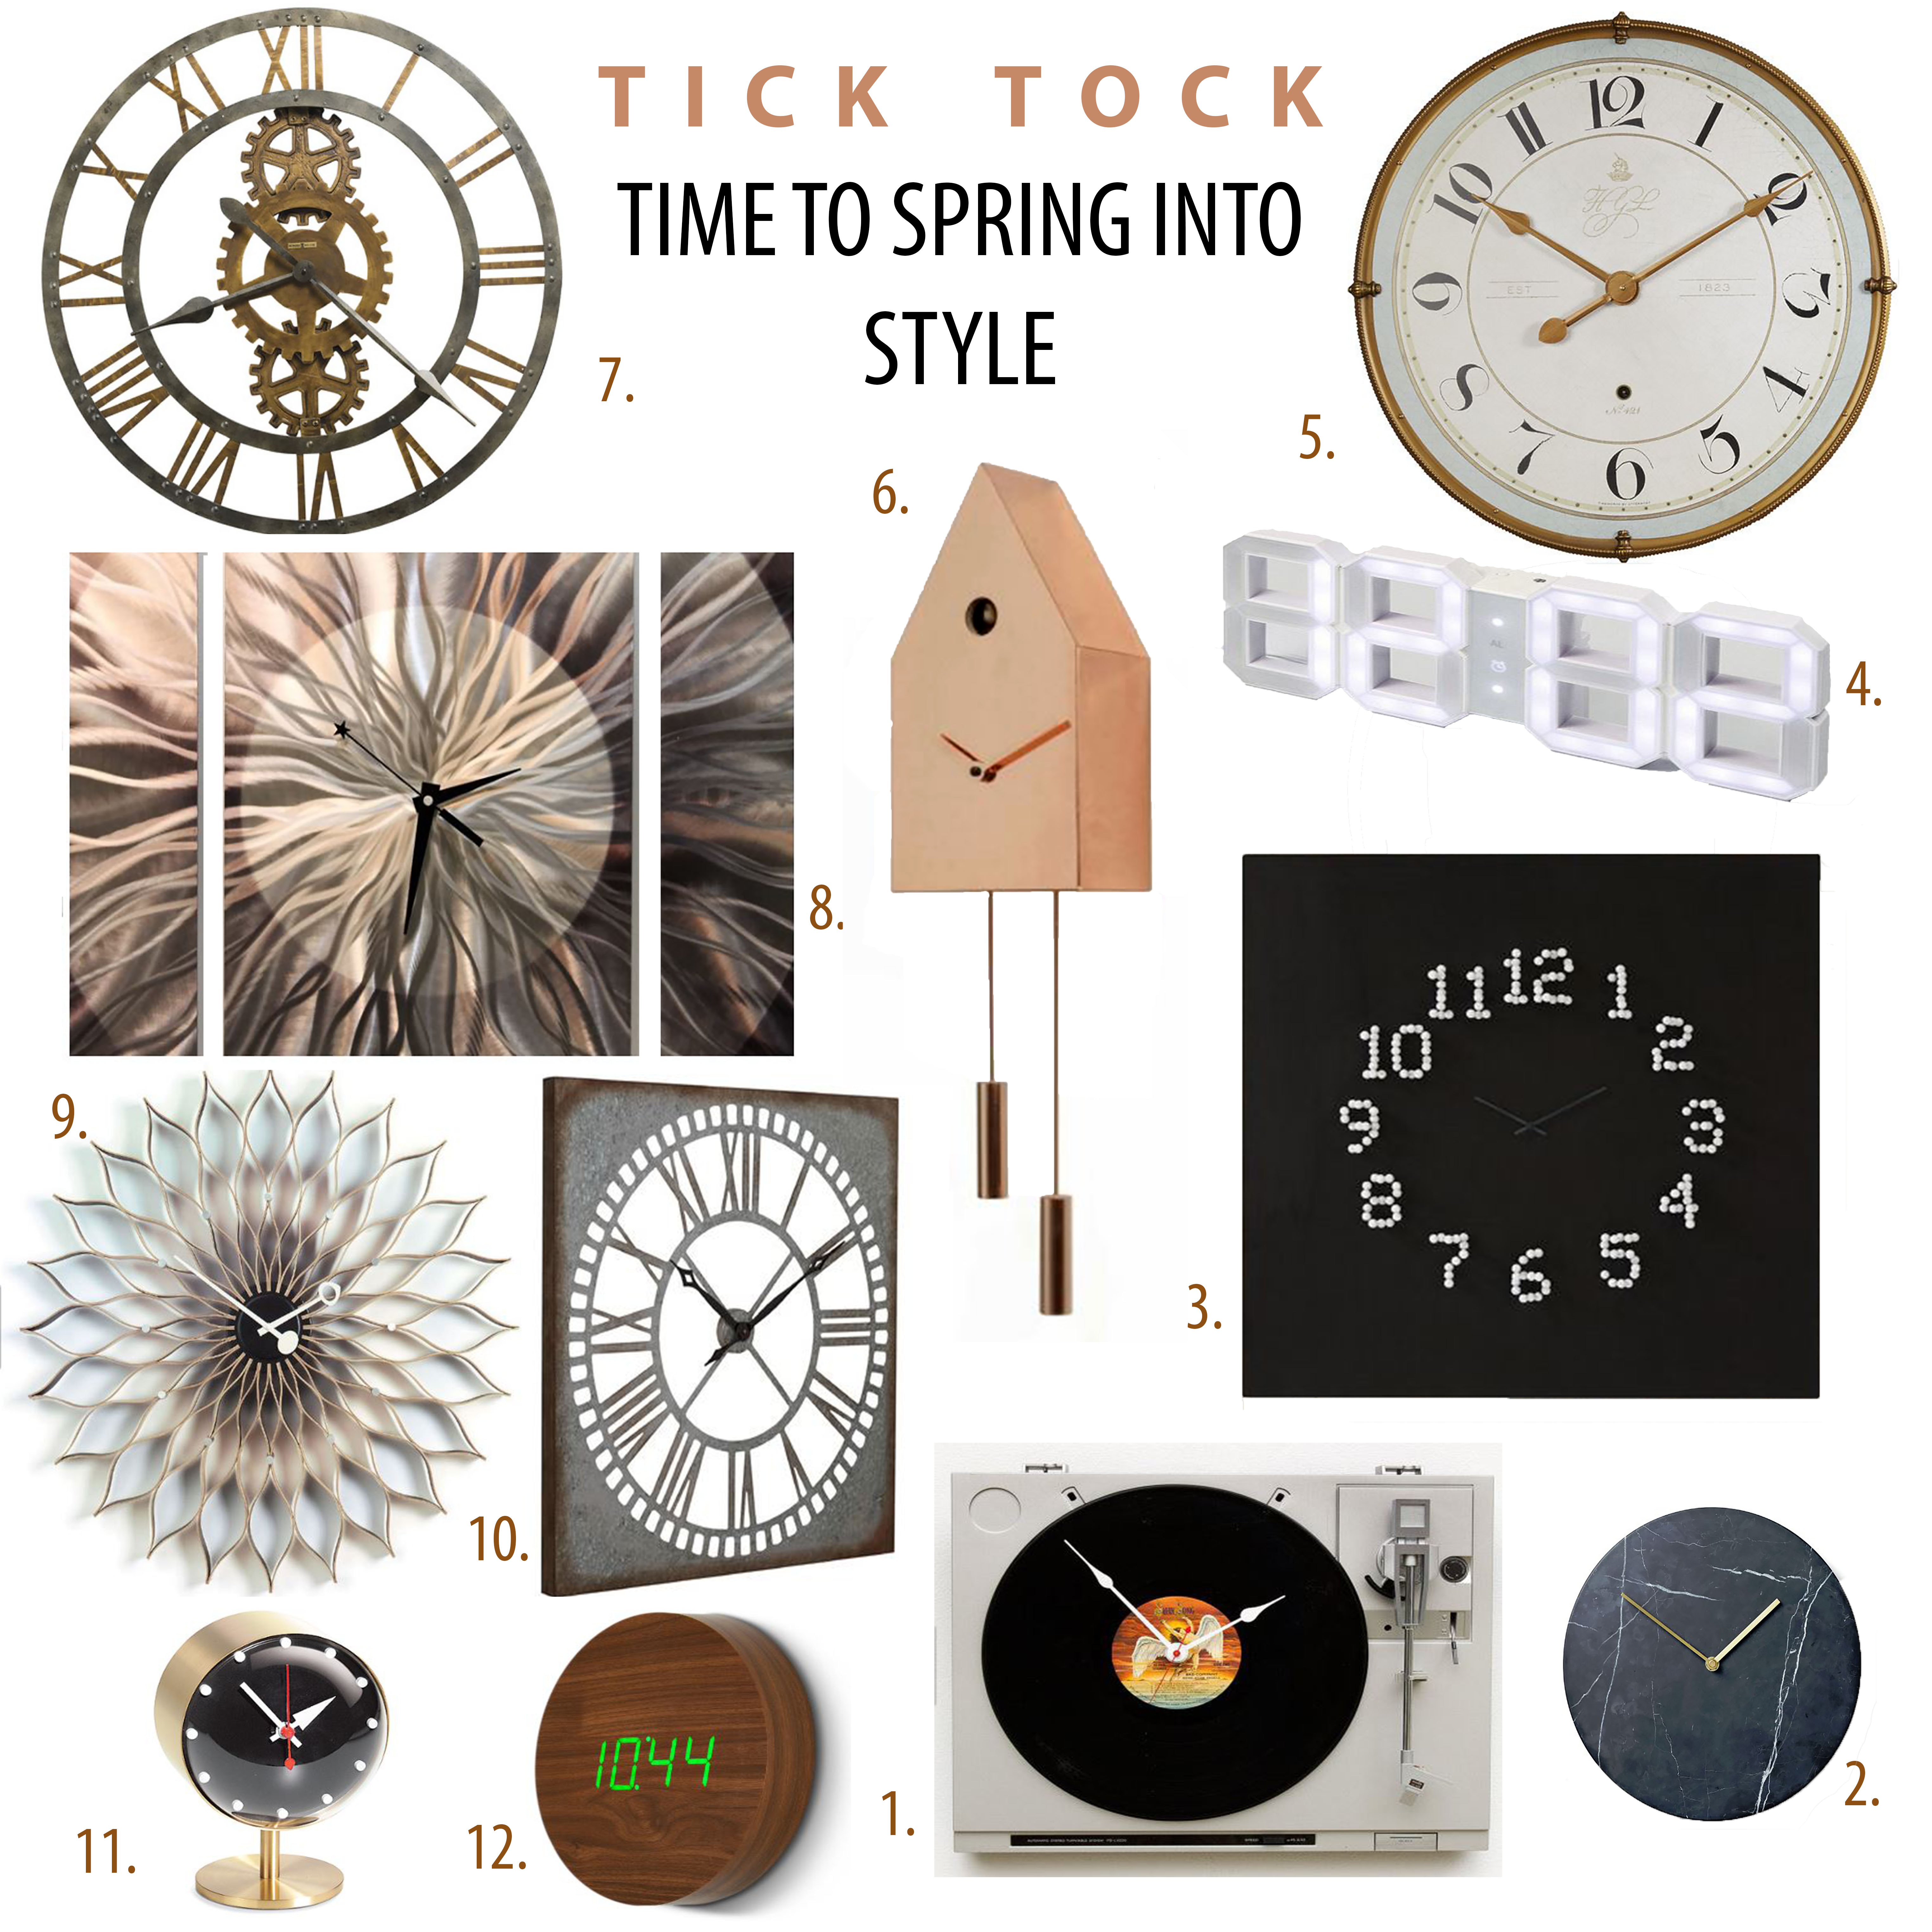 Time to Spring into style